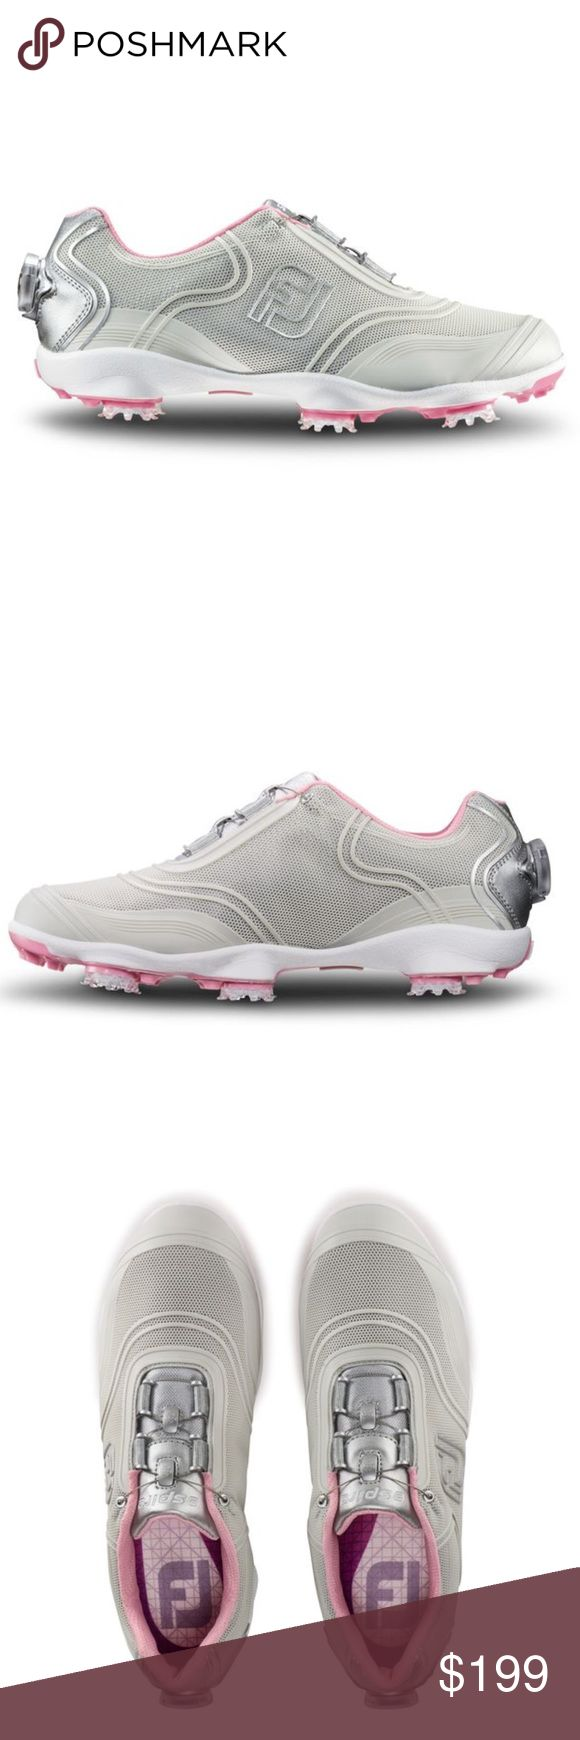 ❗️1 LEFT Footjoy Performance Golf Shoe MSRP $210 ❗️1 LEFT Footjoy Performance Women's Golf Shoes. #1 shoe in golf! Brand new never worn in original box size 8. Light pink, silver & grey. Feel free to make an offer! I'm giving to the first reasonable offer I receive & give great bundle deals! Moving Clearout Sale--all must go! ;-) Footjoy Shoes Athletic Shoes